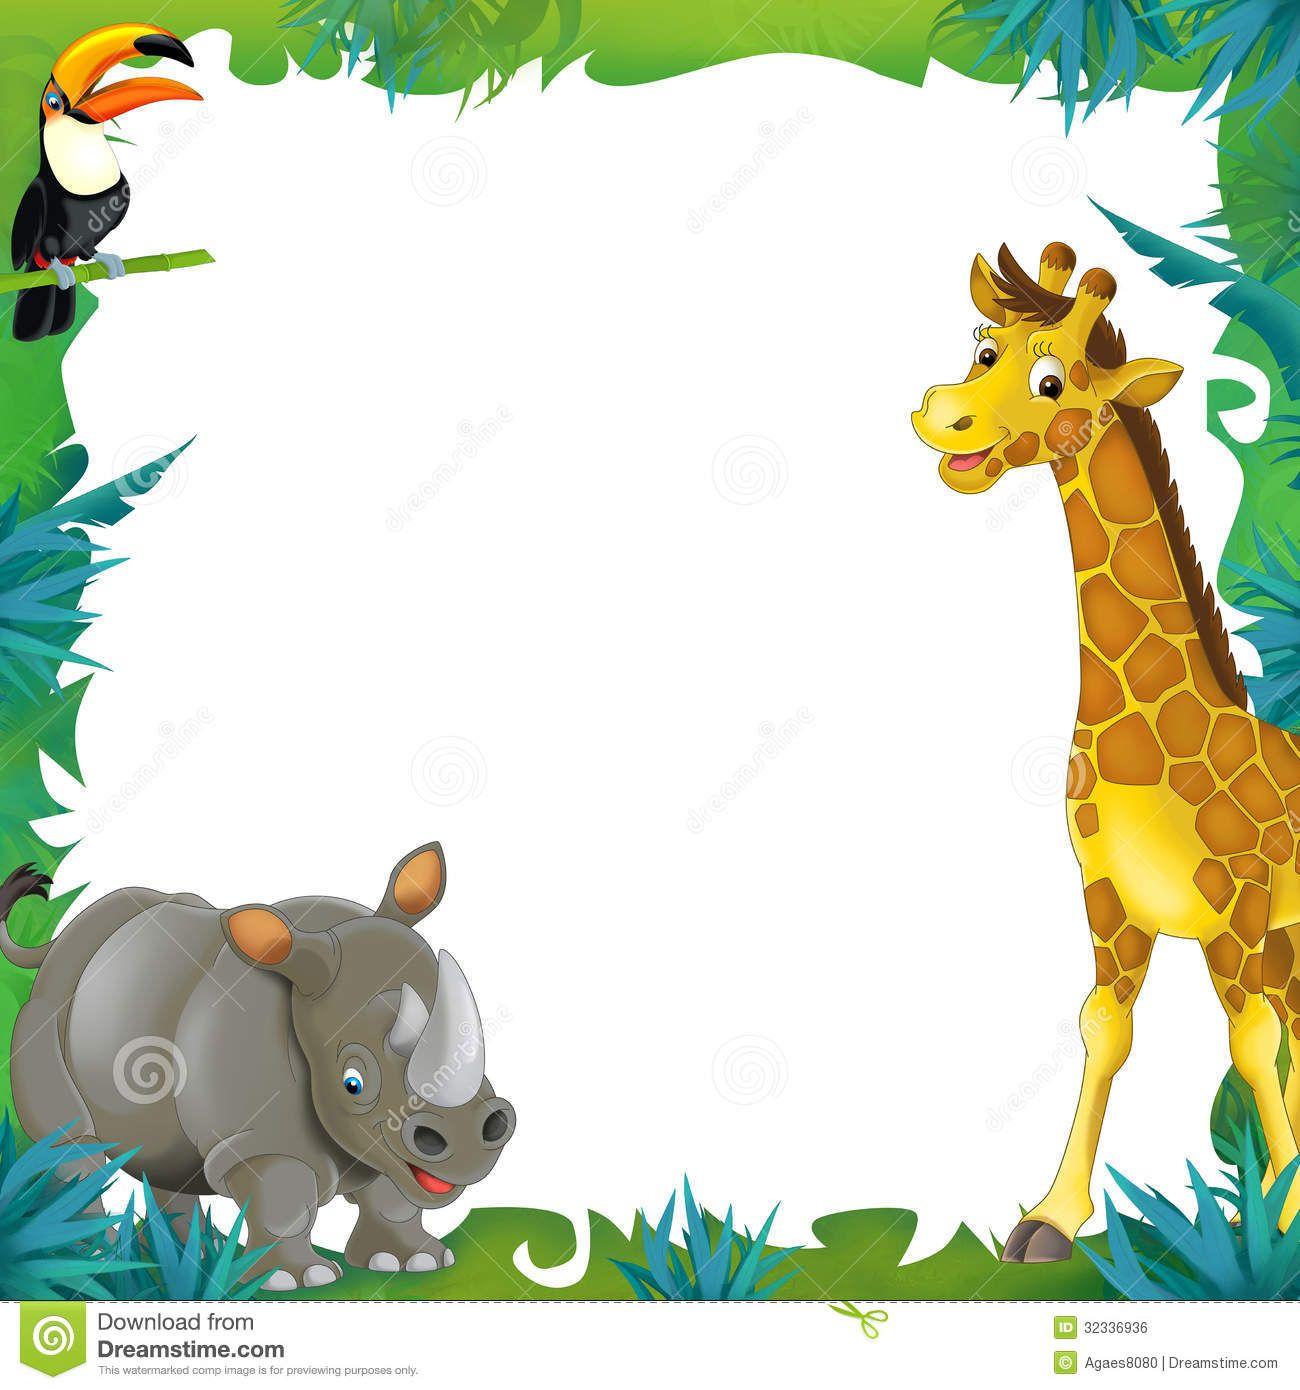 cartoon safari jungle frame border template illustration for the children download from over 29 million high quality stock photos images vectors  [ 1300 x 1390 Pixel ]